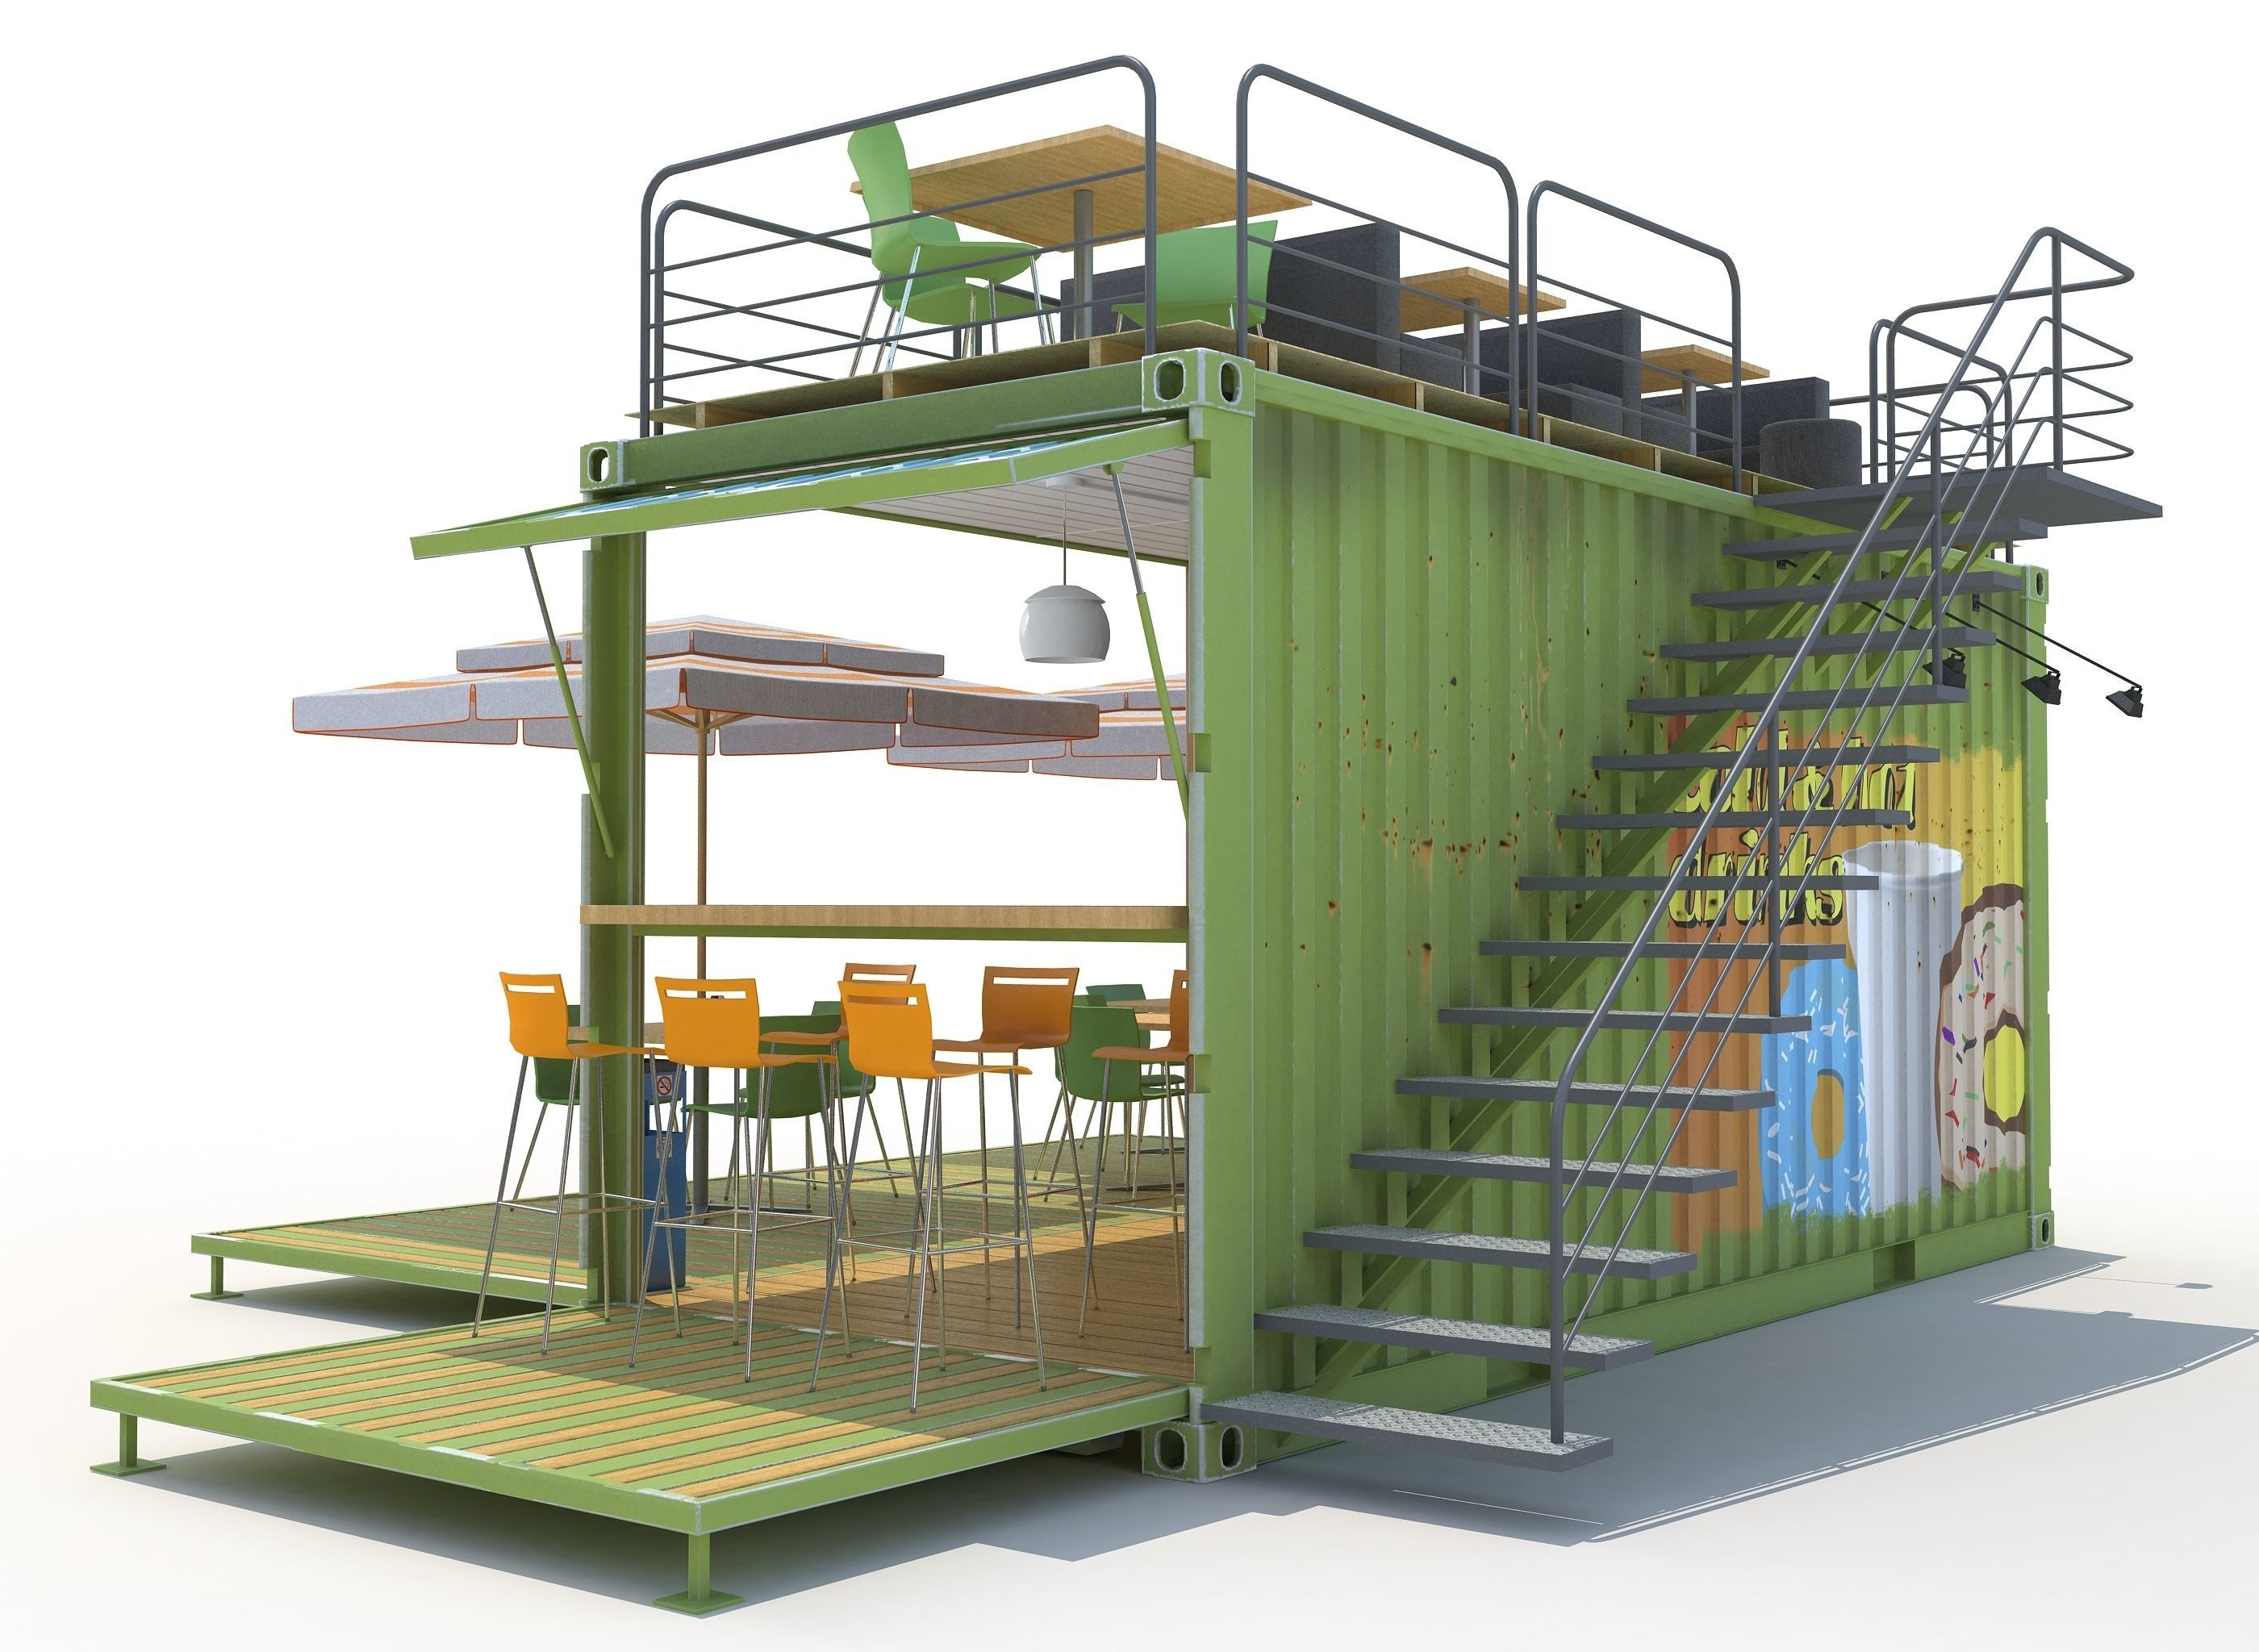 container-cafe-3d-model-max-obj-mtl-fbx (3)_-18-11-2019-09-32-42.jpg